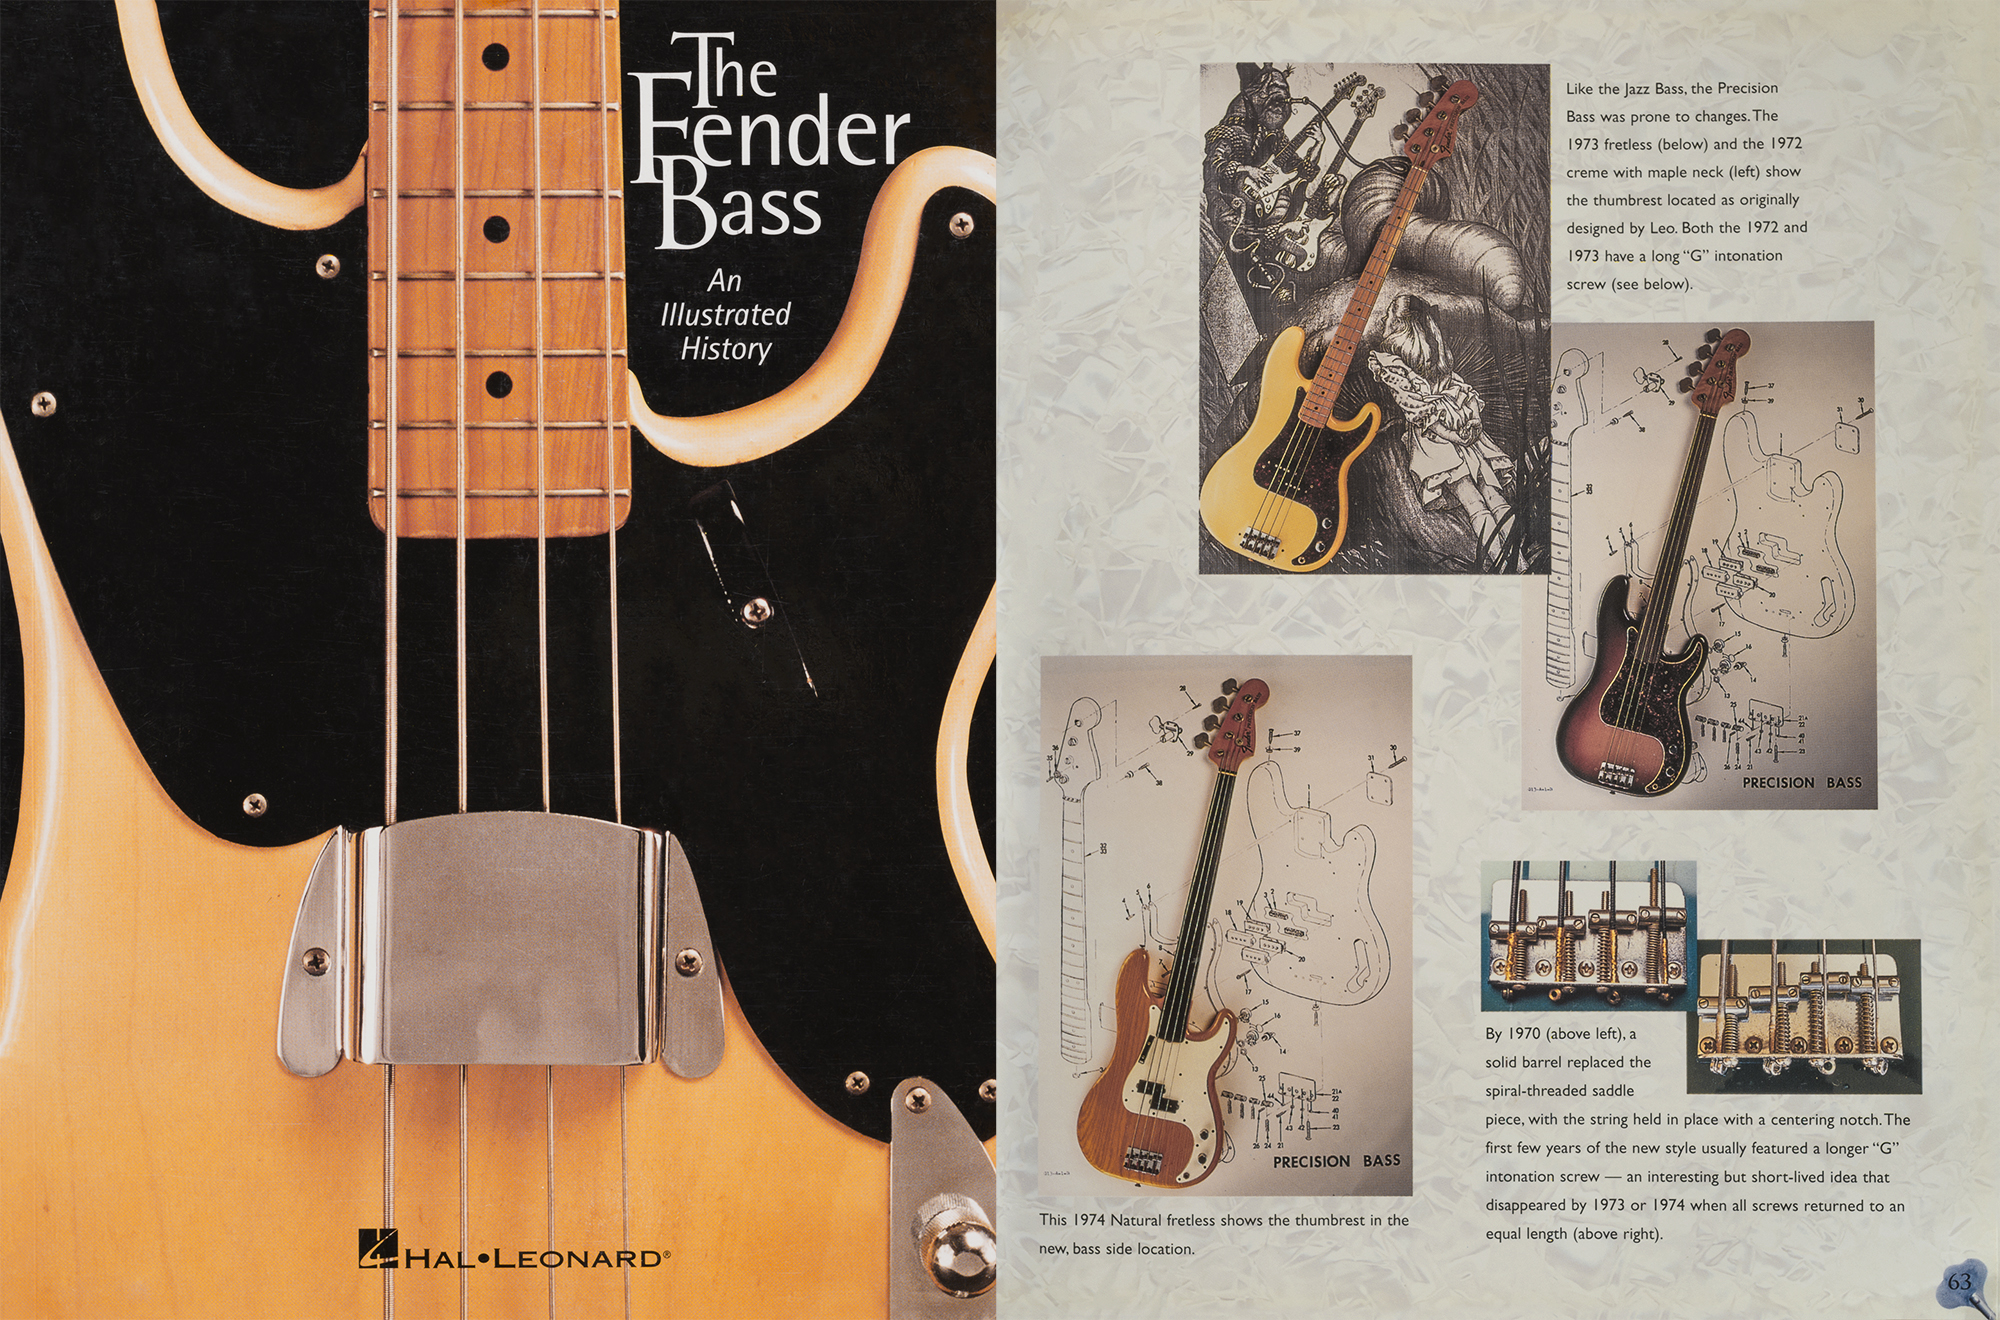 This Natural Fretless bass appears in my Published Fender Bass Book on page 63